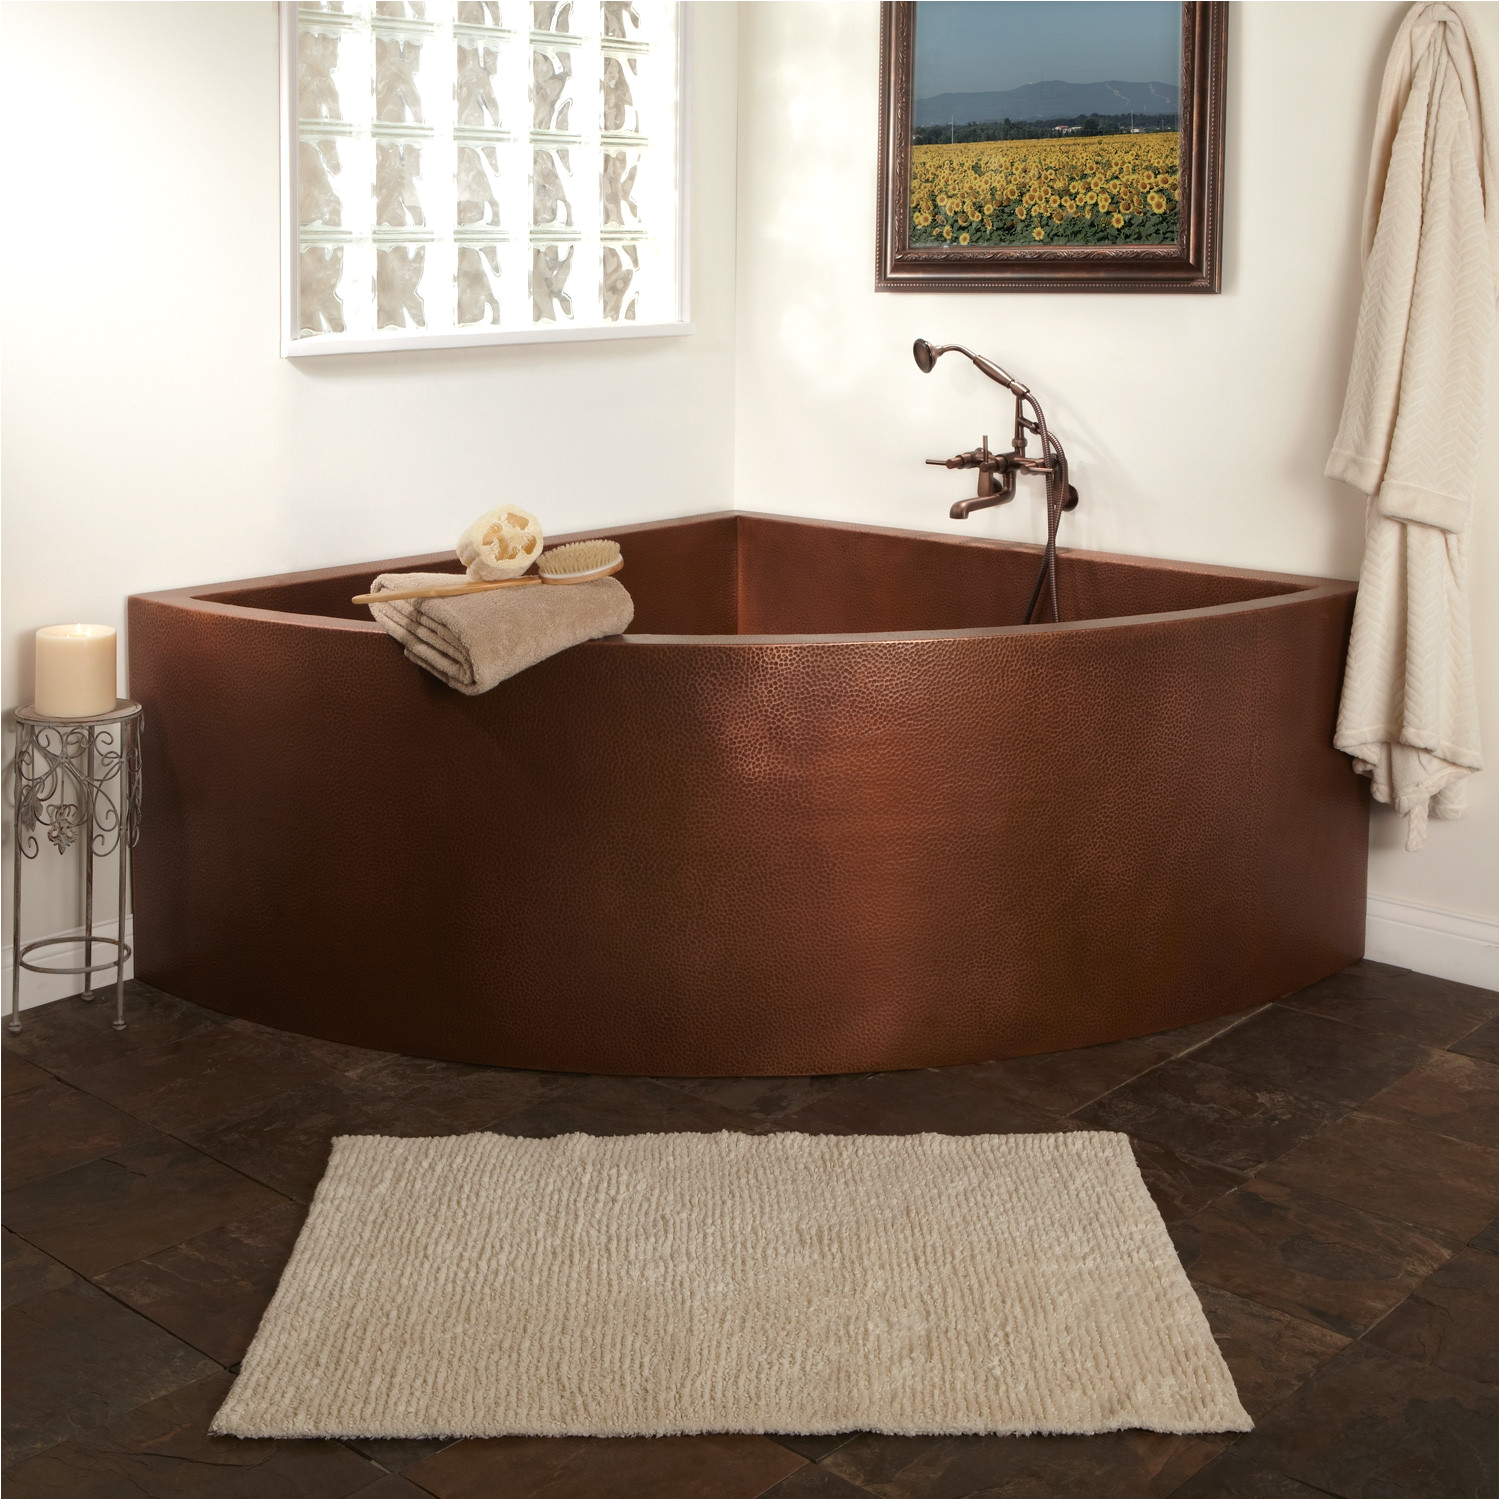 85 crosley double wall corner hammered copper soaking tub with seats